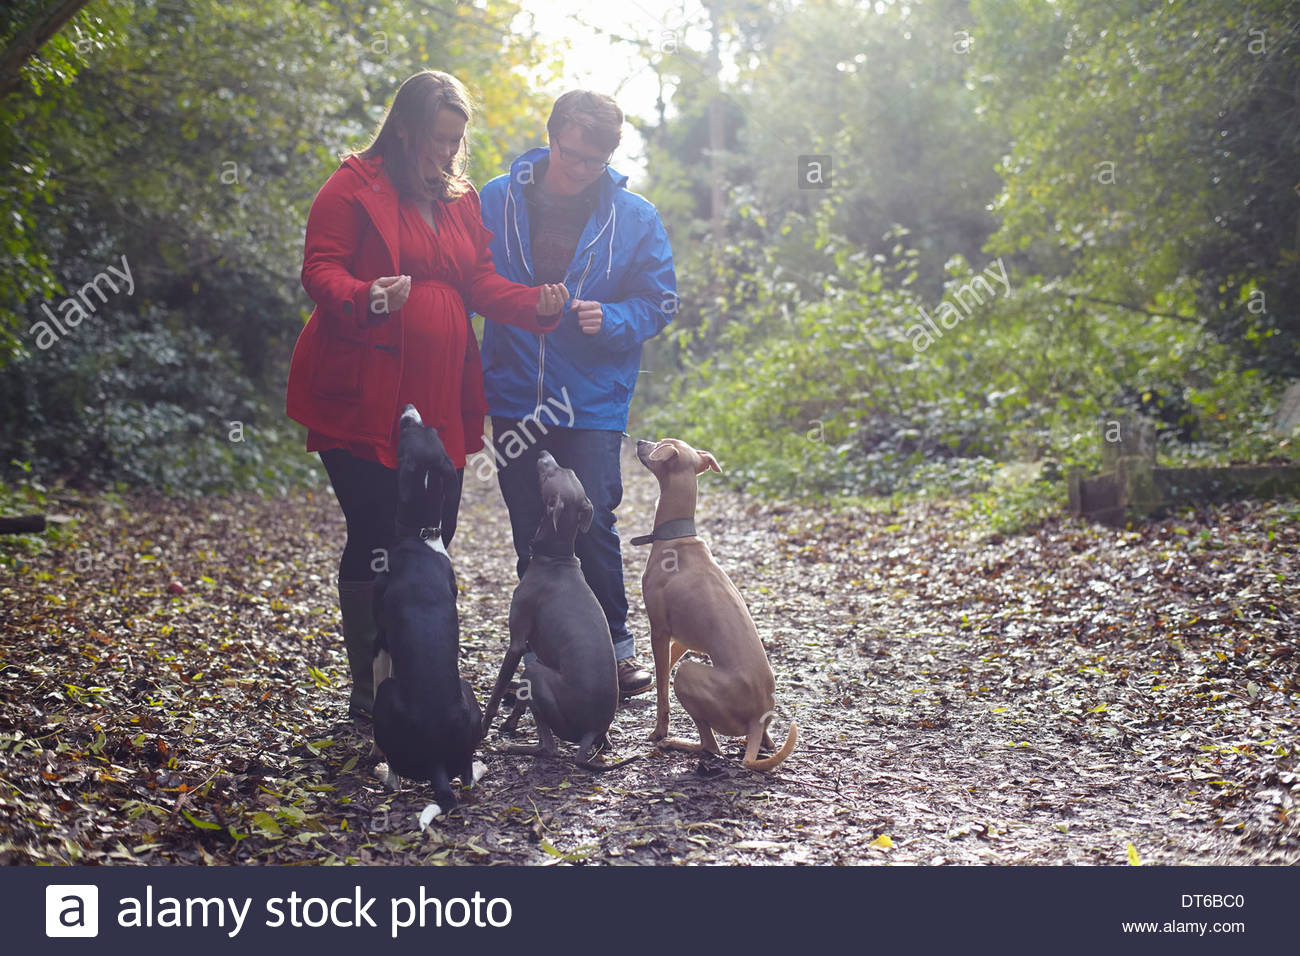 Young couple and their three obedient whippets in woods - Stock Image